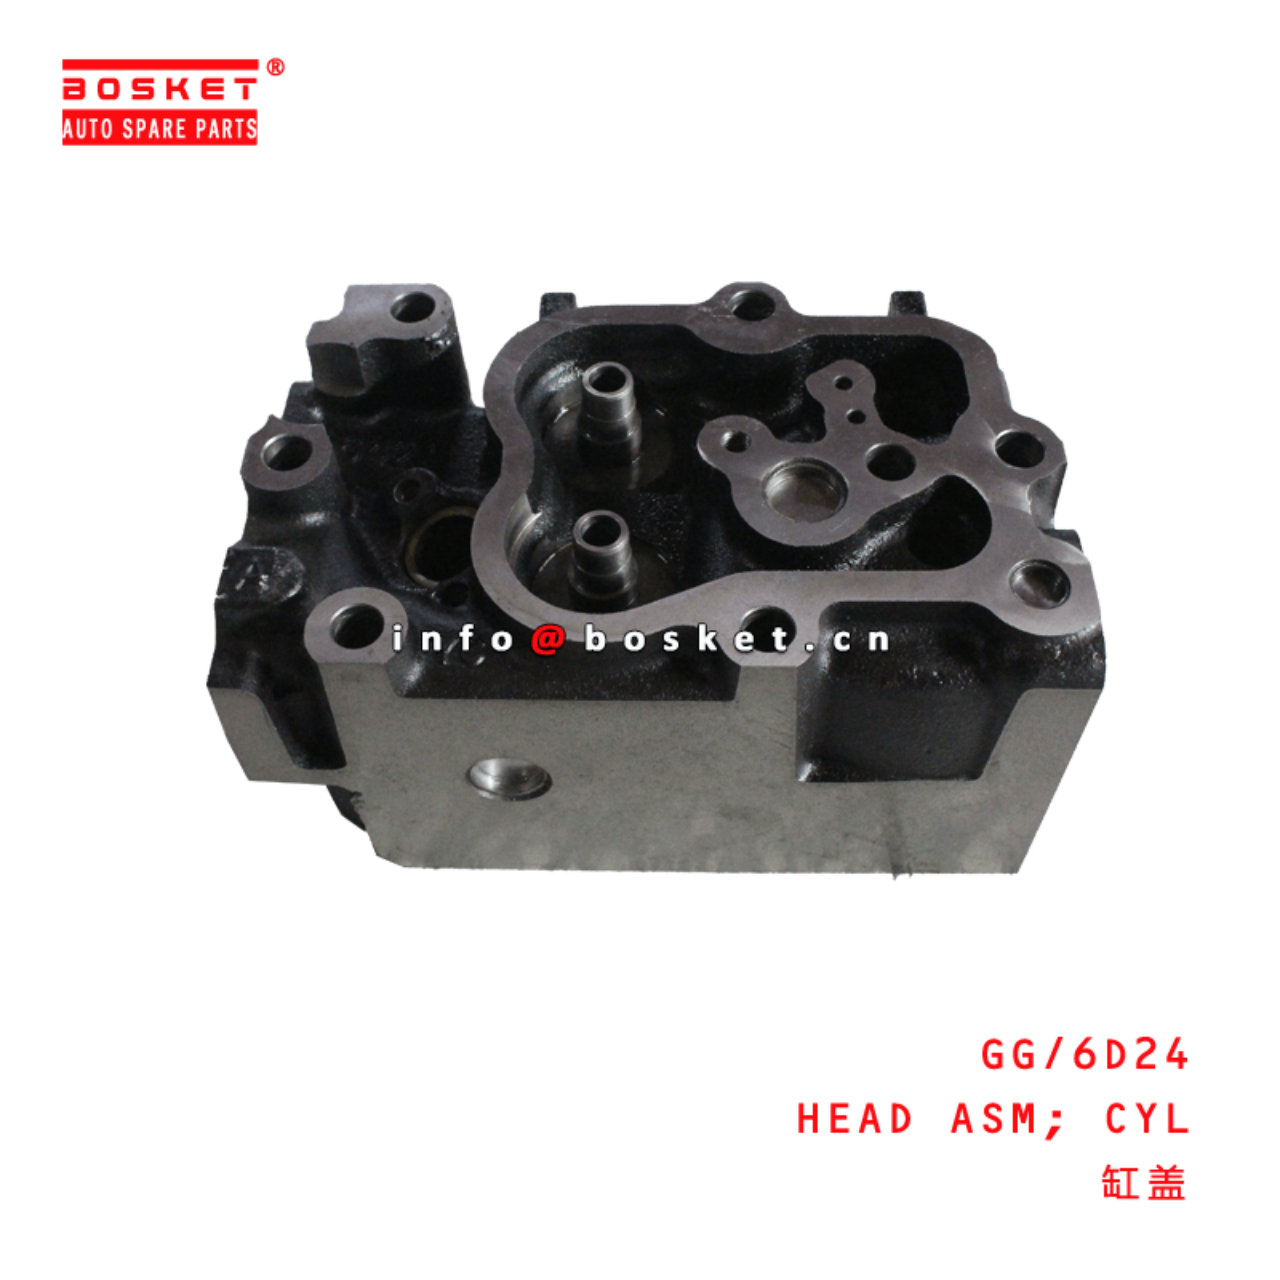 GG/6D24 Cylinder Head Assembly Suitable for ISUZU 6D24